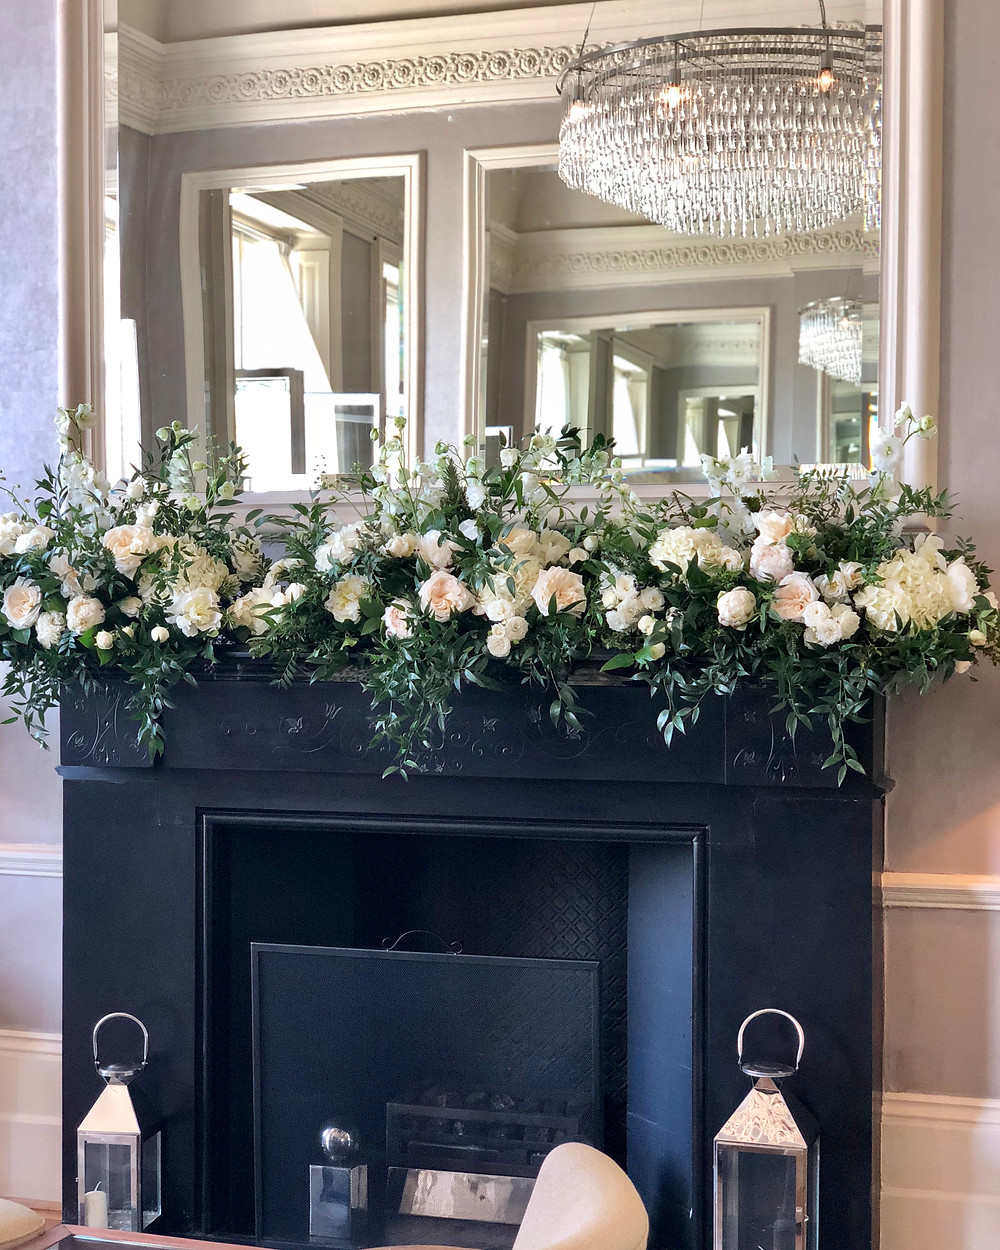 Mantlepiece Flowers at The Bingham Hotel in Richmond